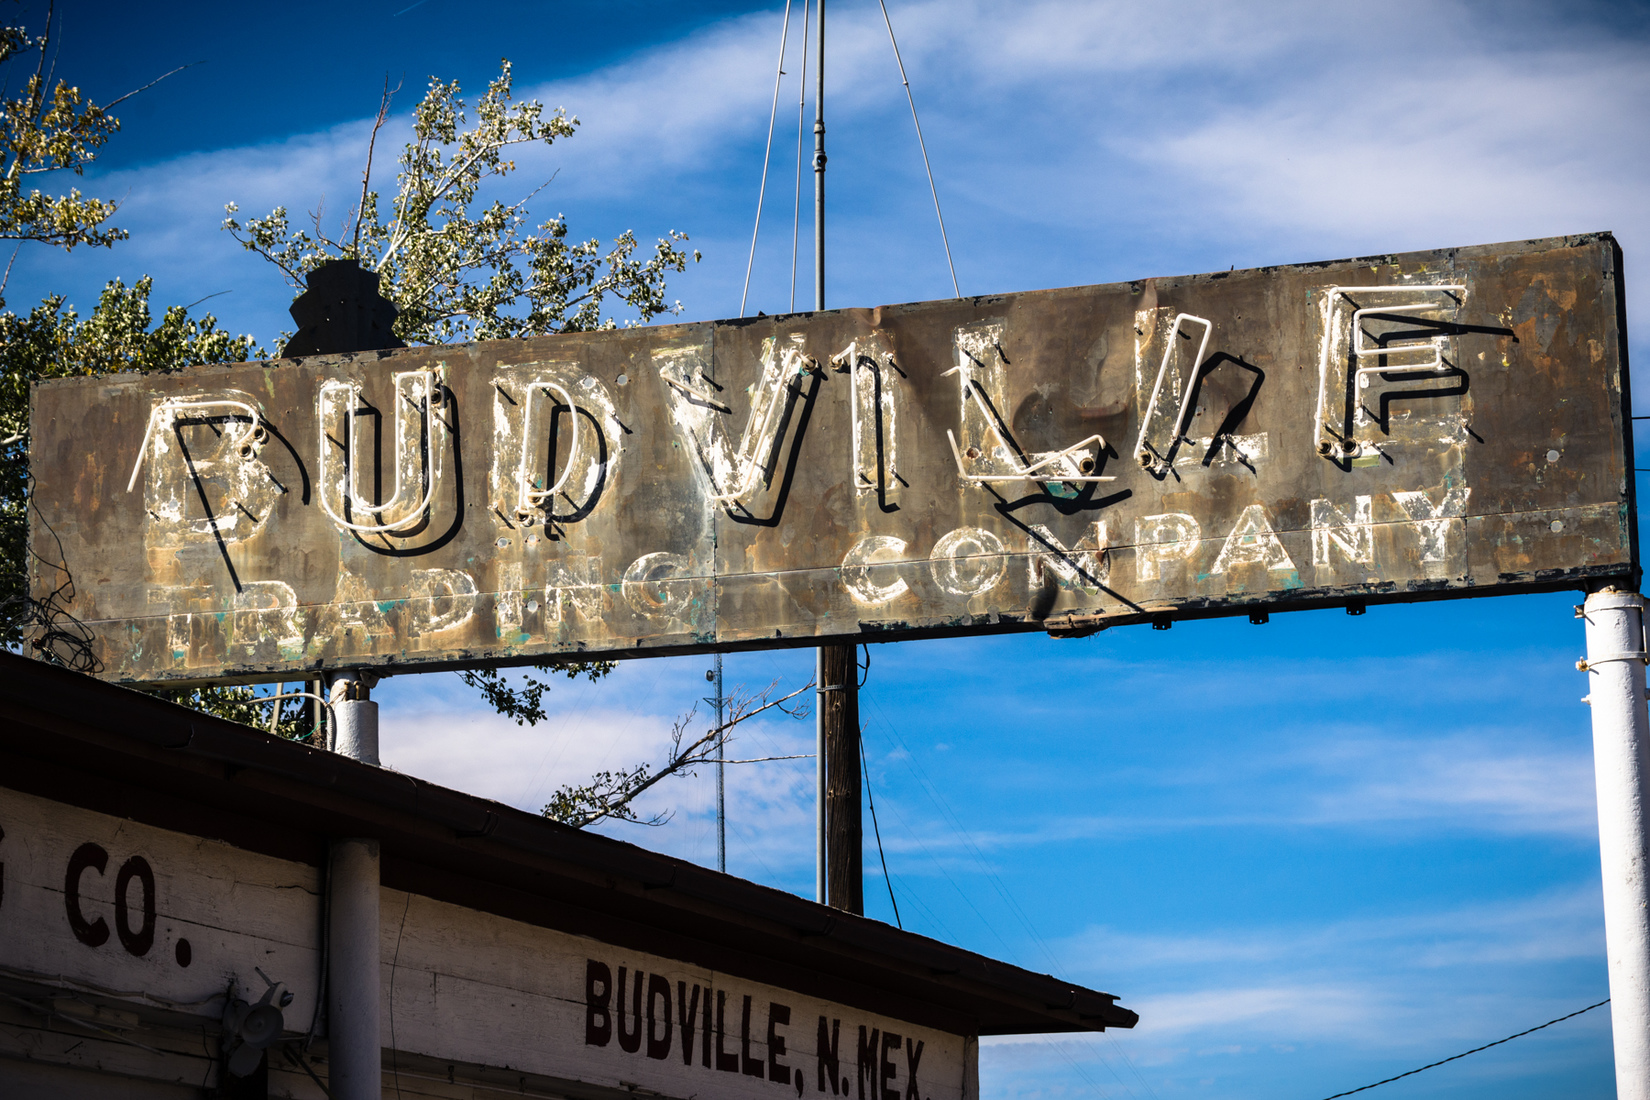 Road Signs Budville Trading Company